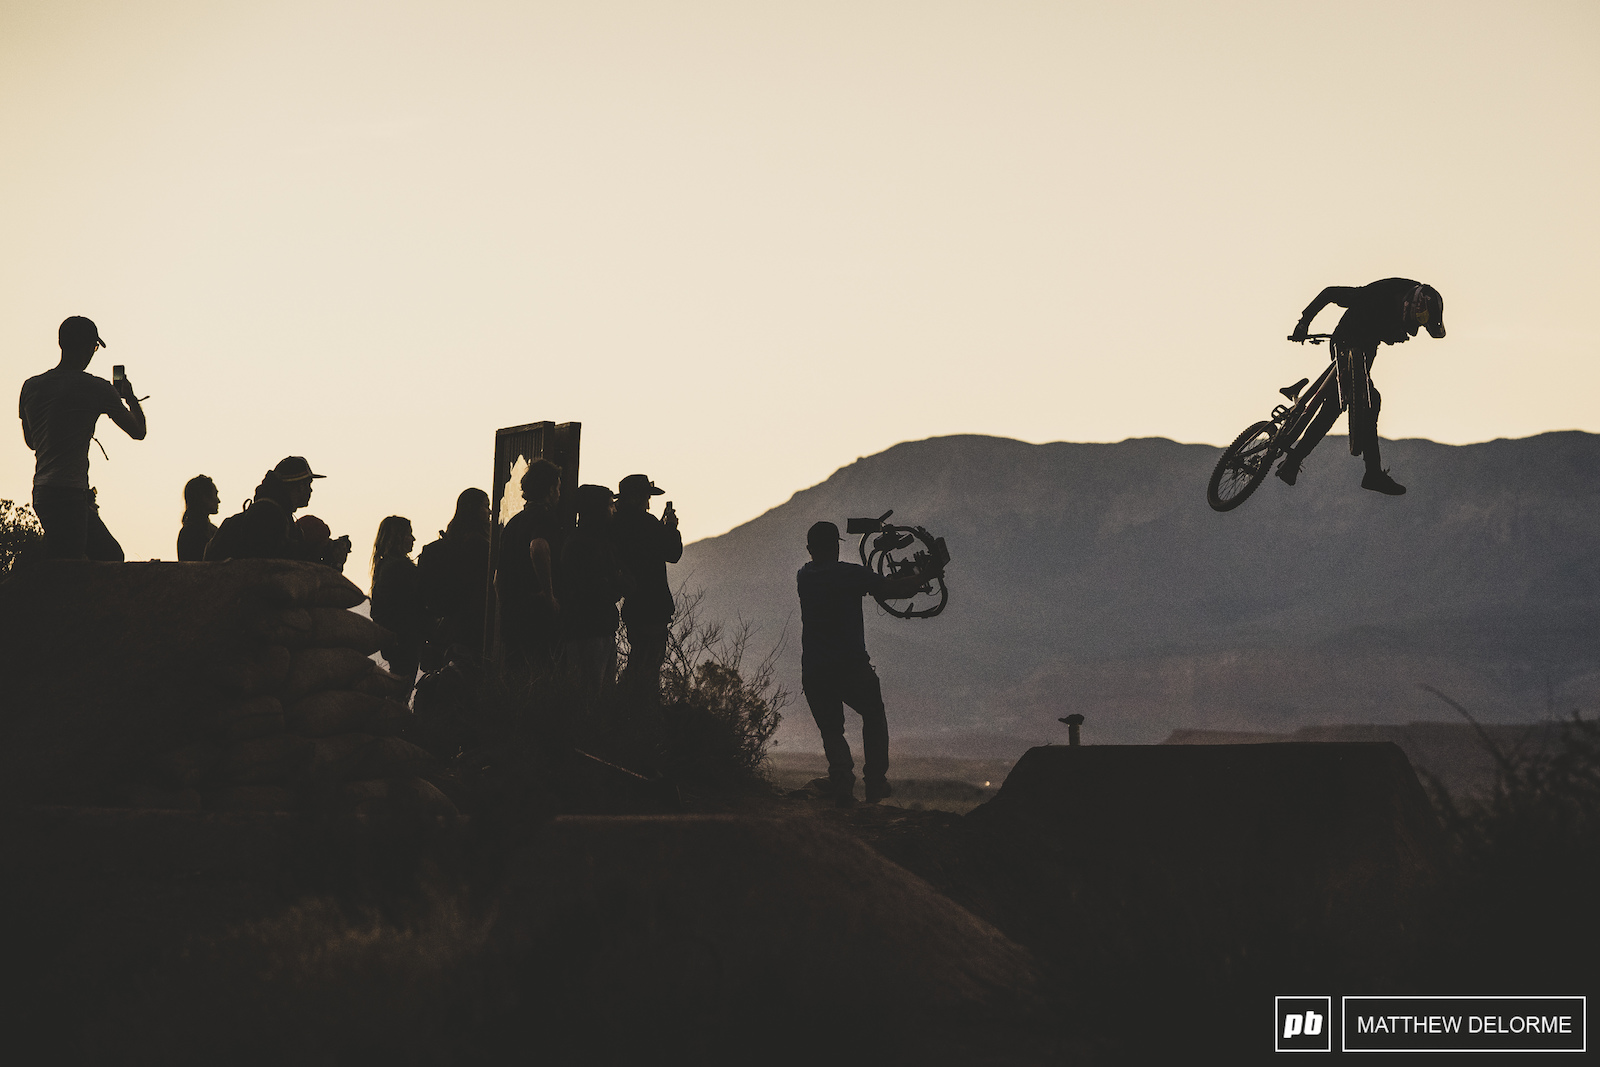 Brandon Semenuk started tricking right off the bat this evening on the lower section of his line.